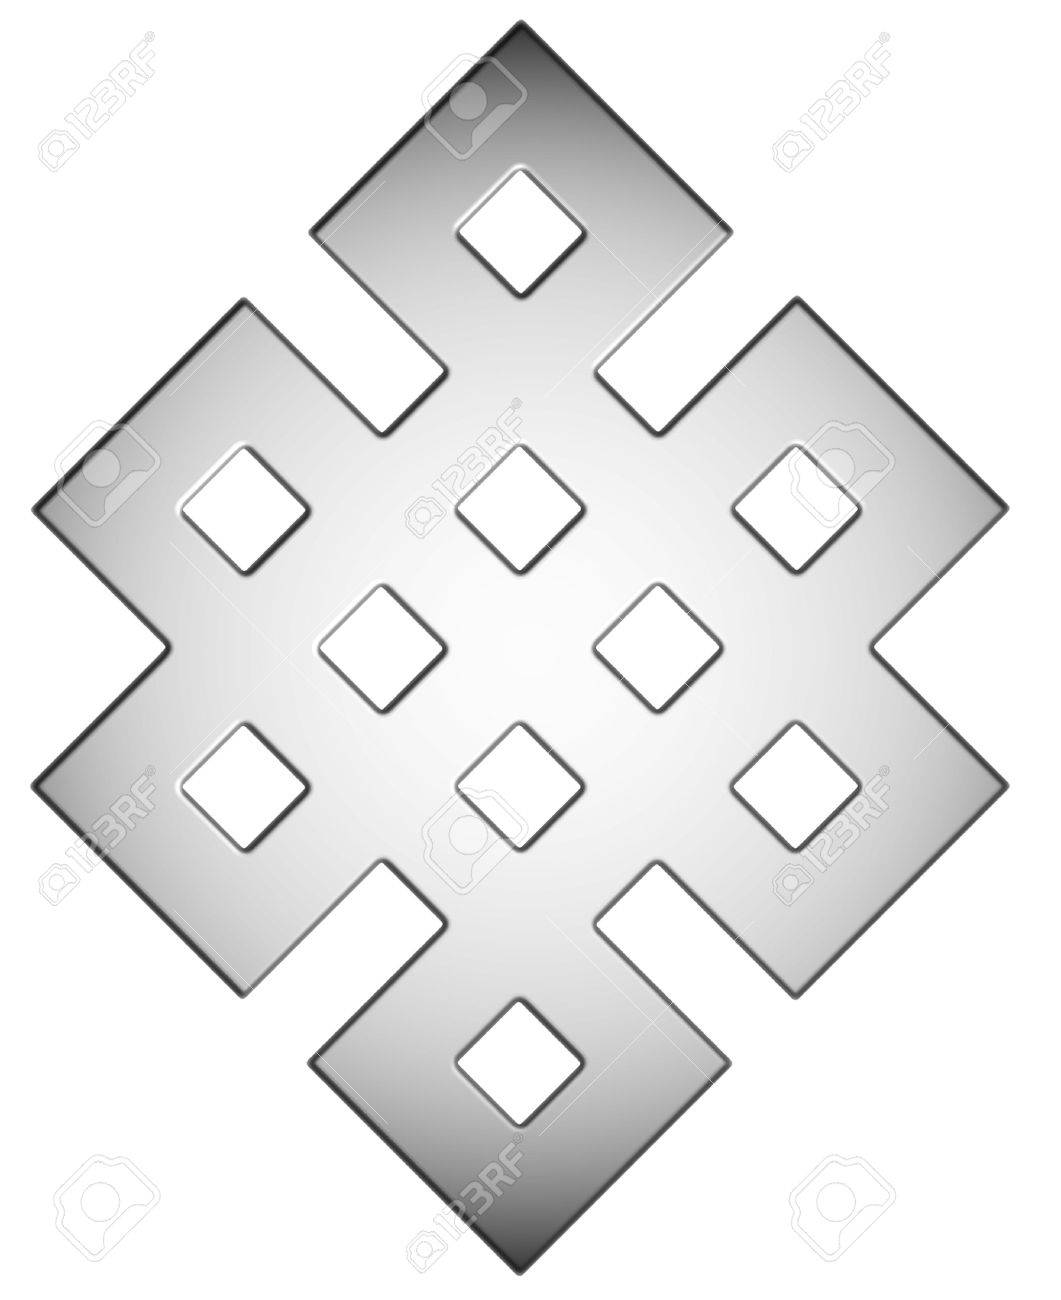 Silver Mystic Knot Symbol Stock Photo Picture And Royalty Free